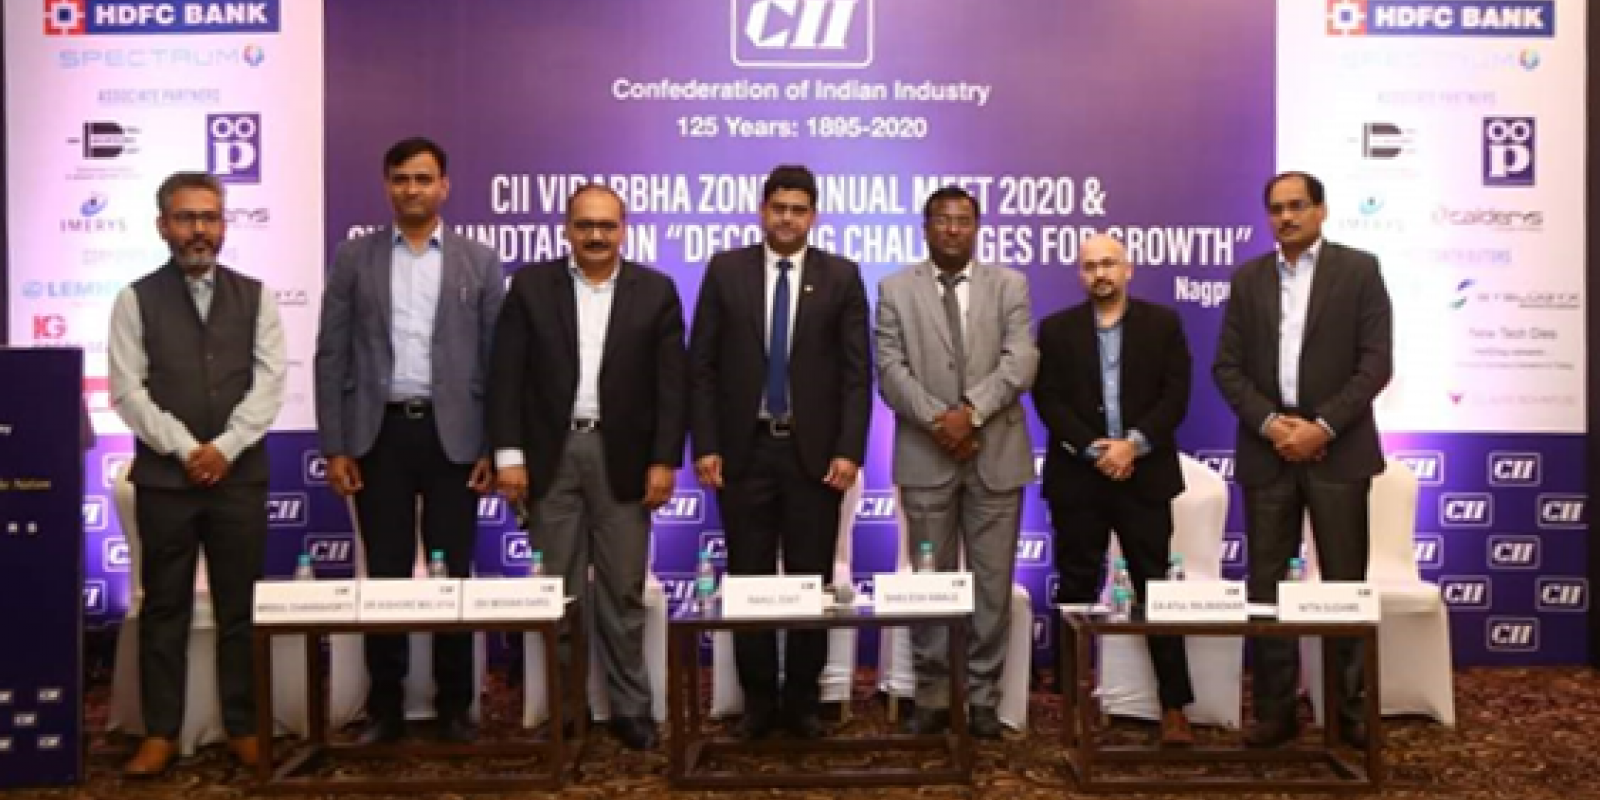 Ish Mohan Garg and participants at CII CXO Roundtable Conference